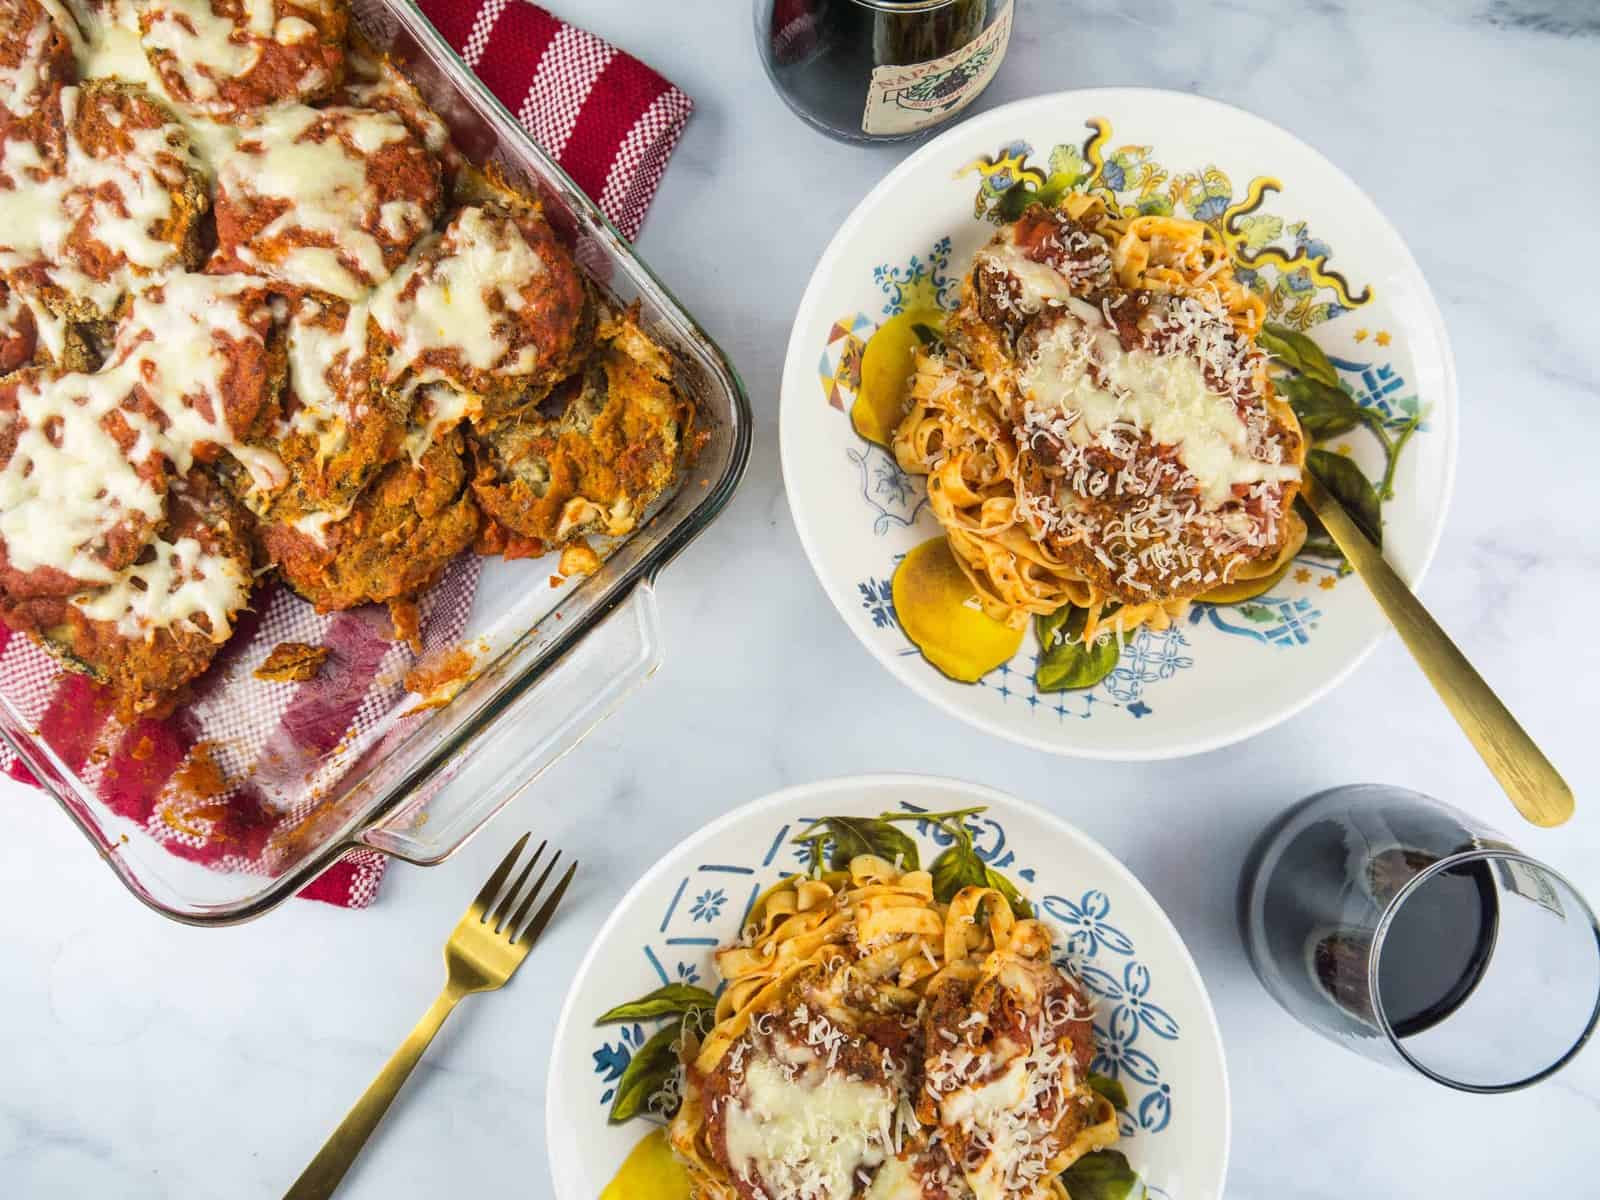 The Best Baked Eggplant Parmesan